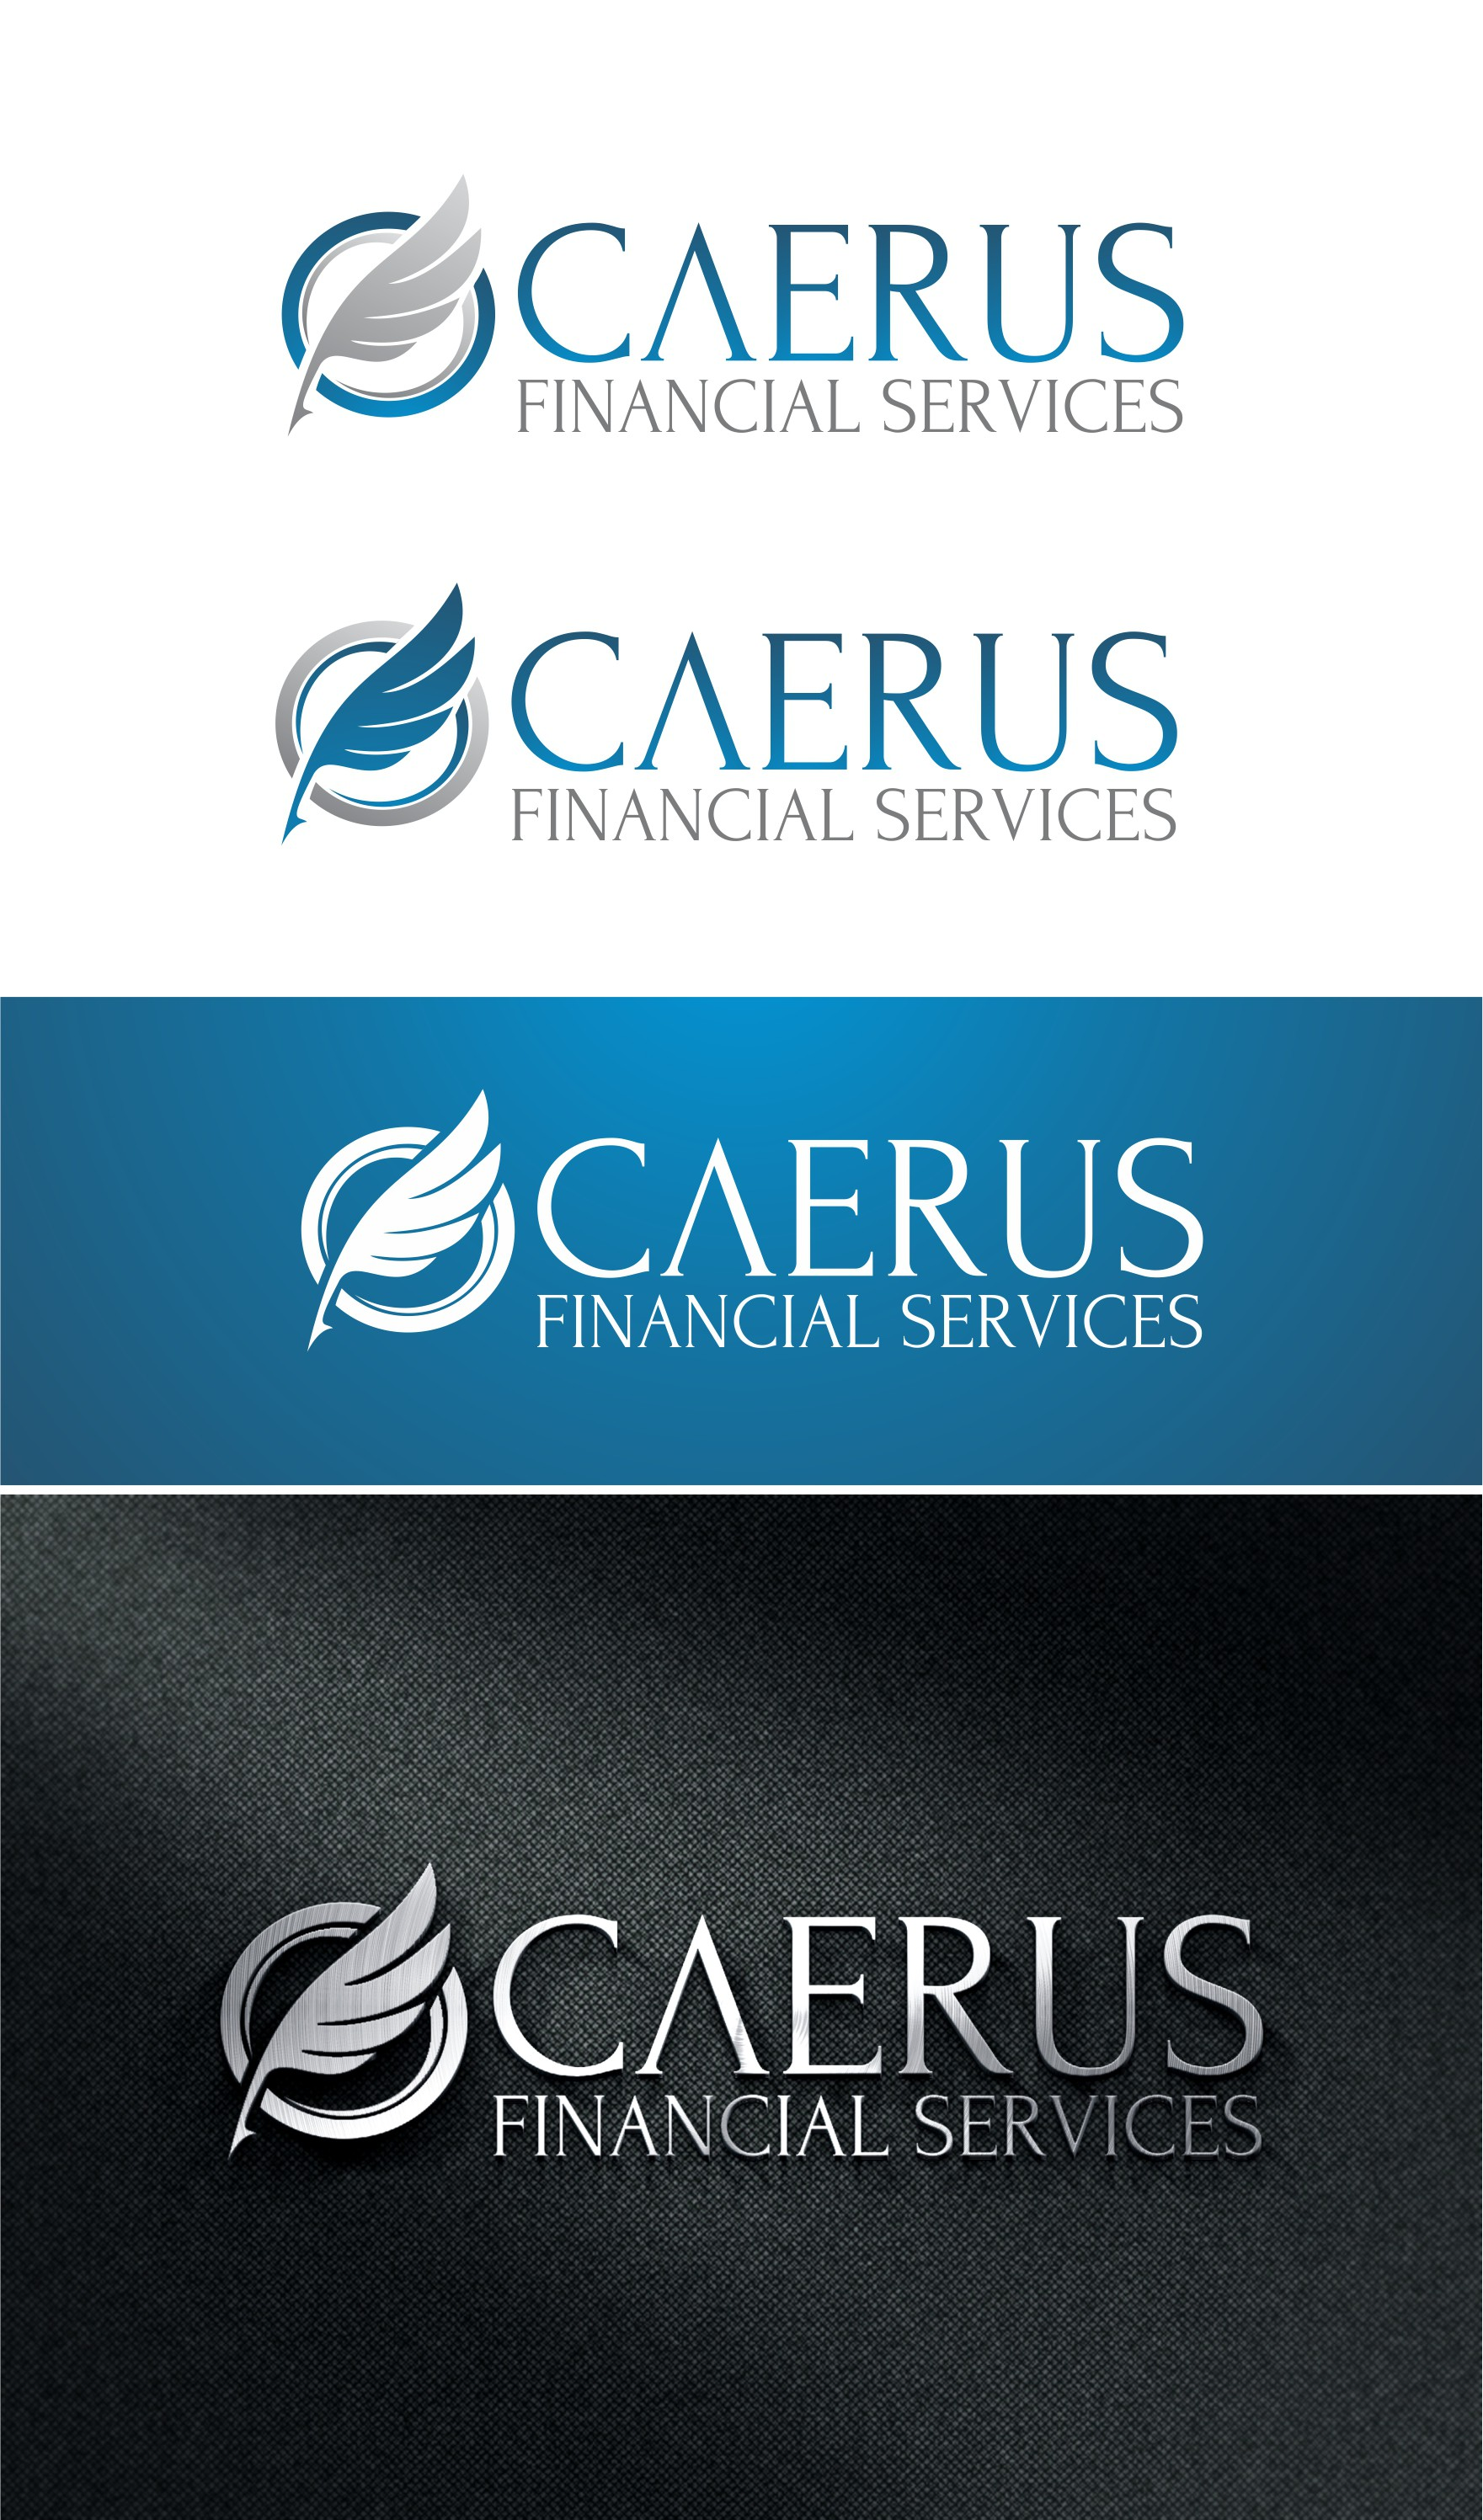 Creative logo needed for bookkeeping and small biz consulting start up